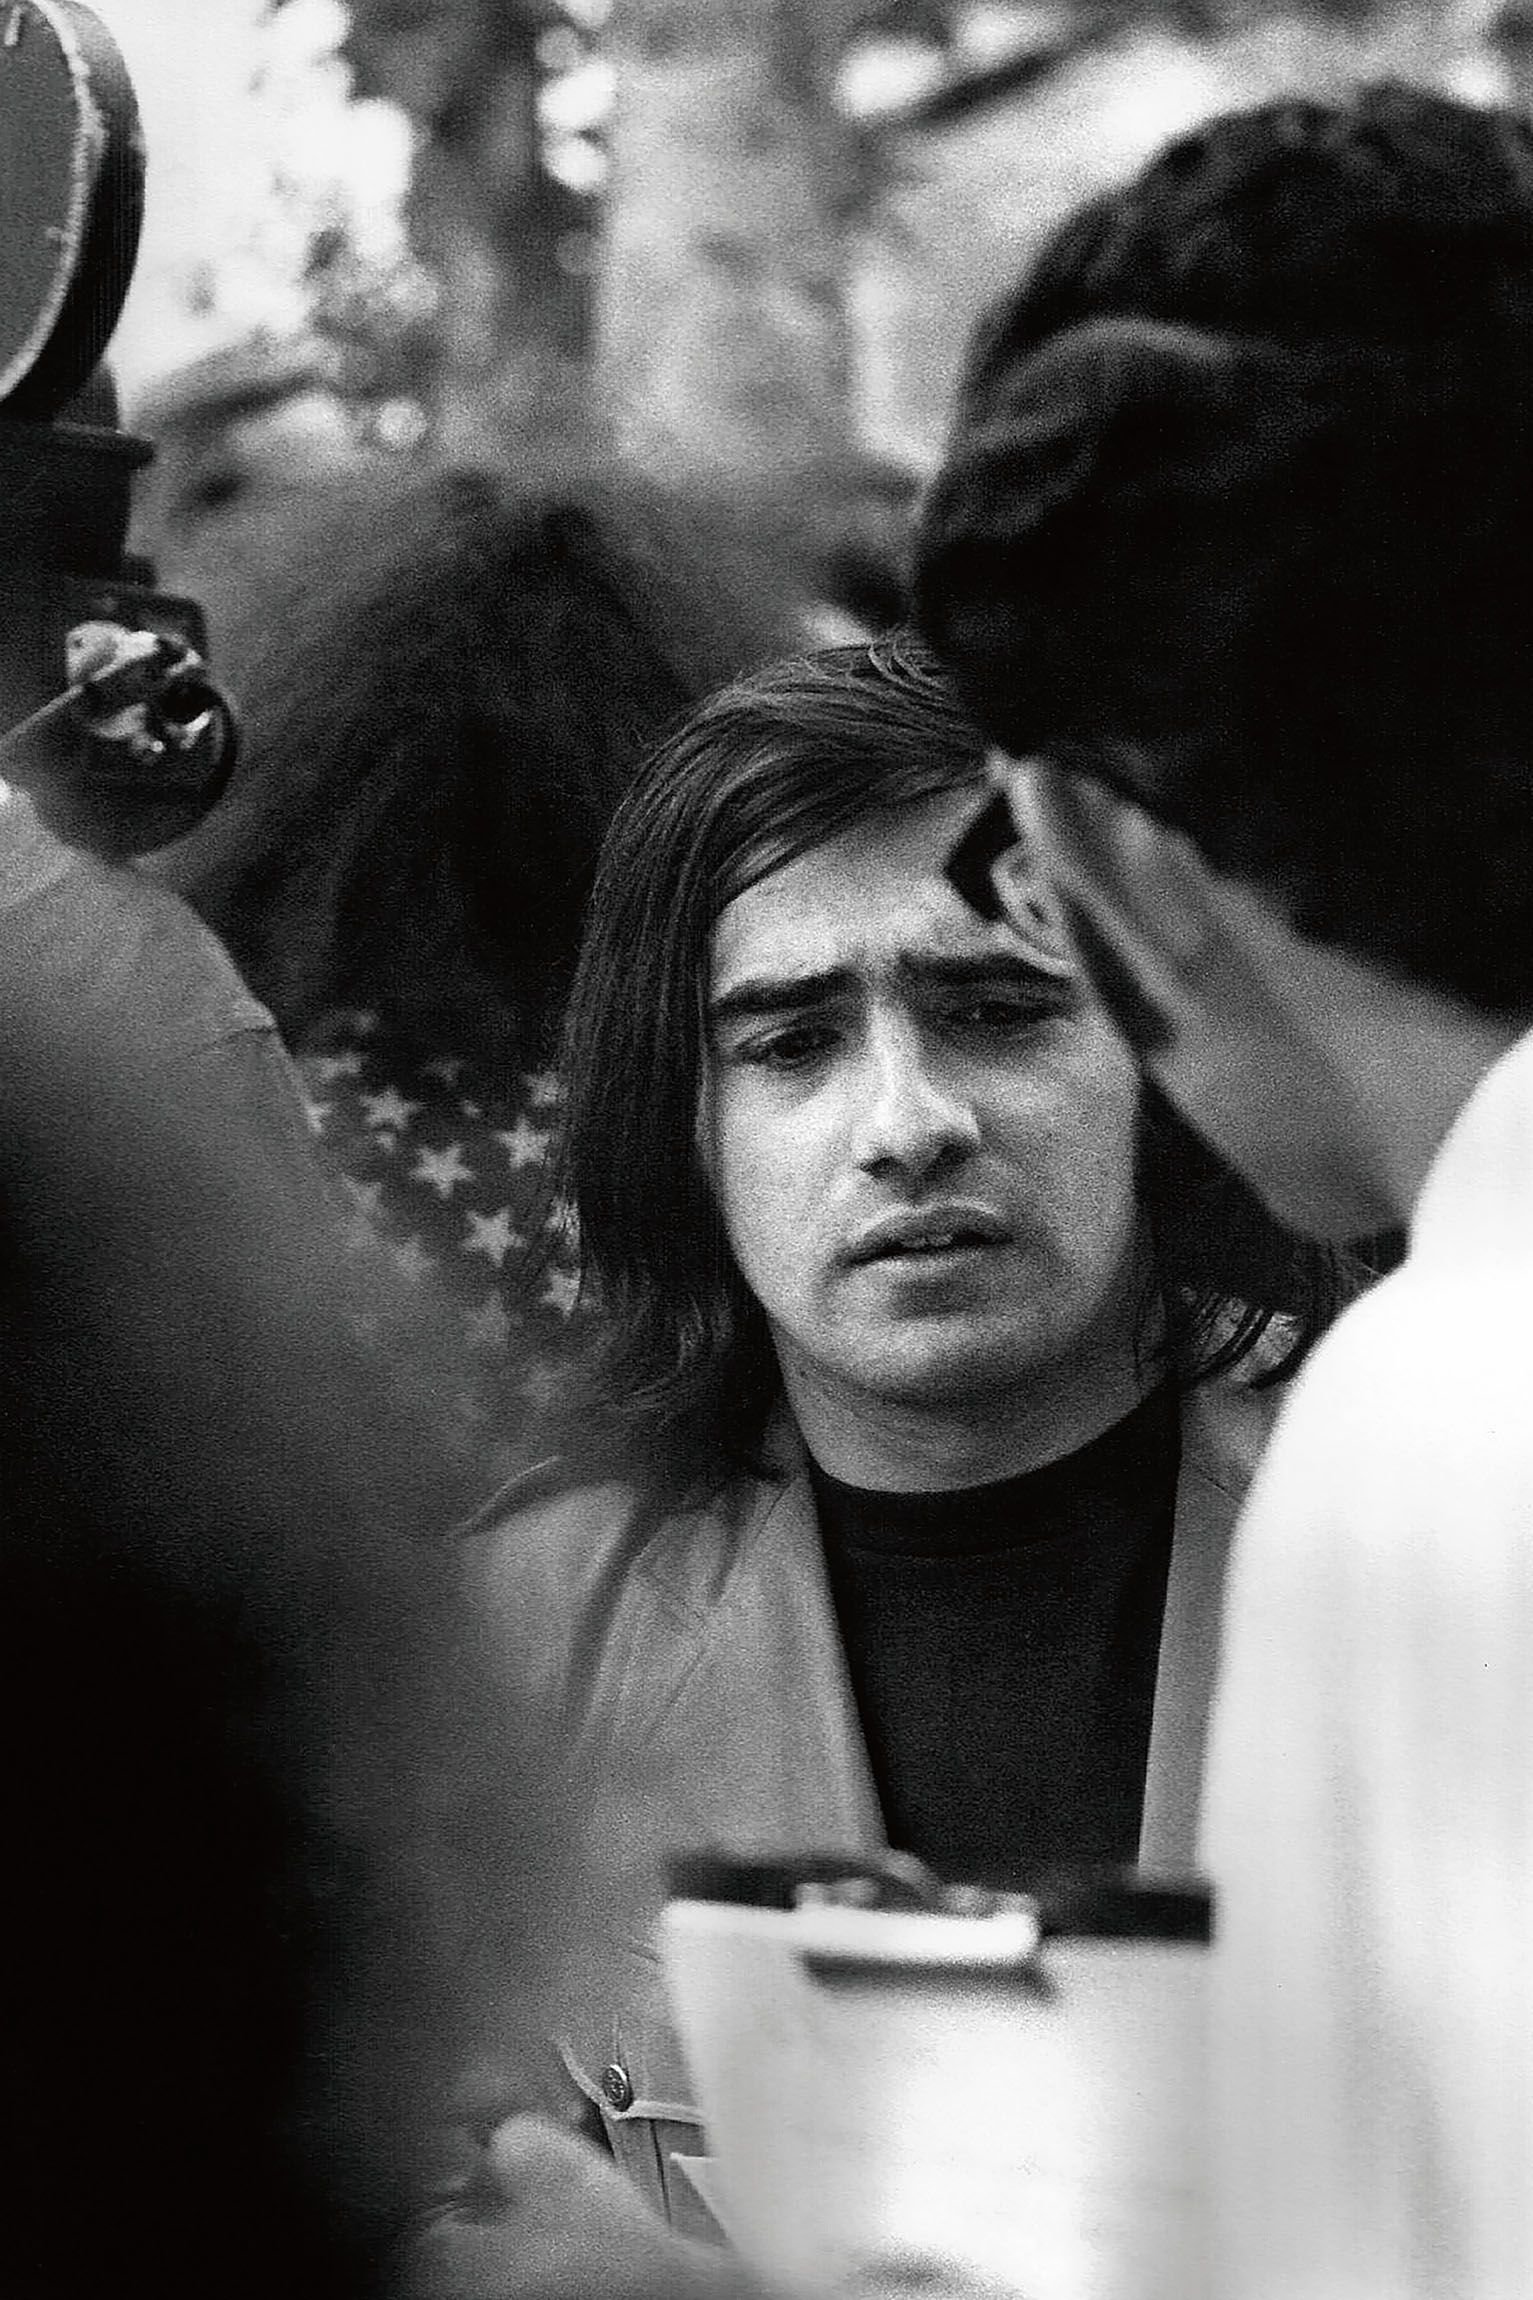 Martin Scorsese at the New York Film Festival in 1970.